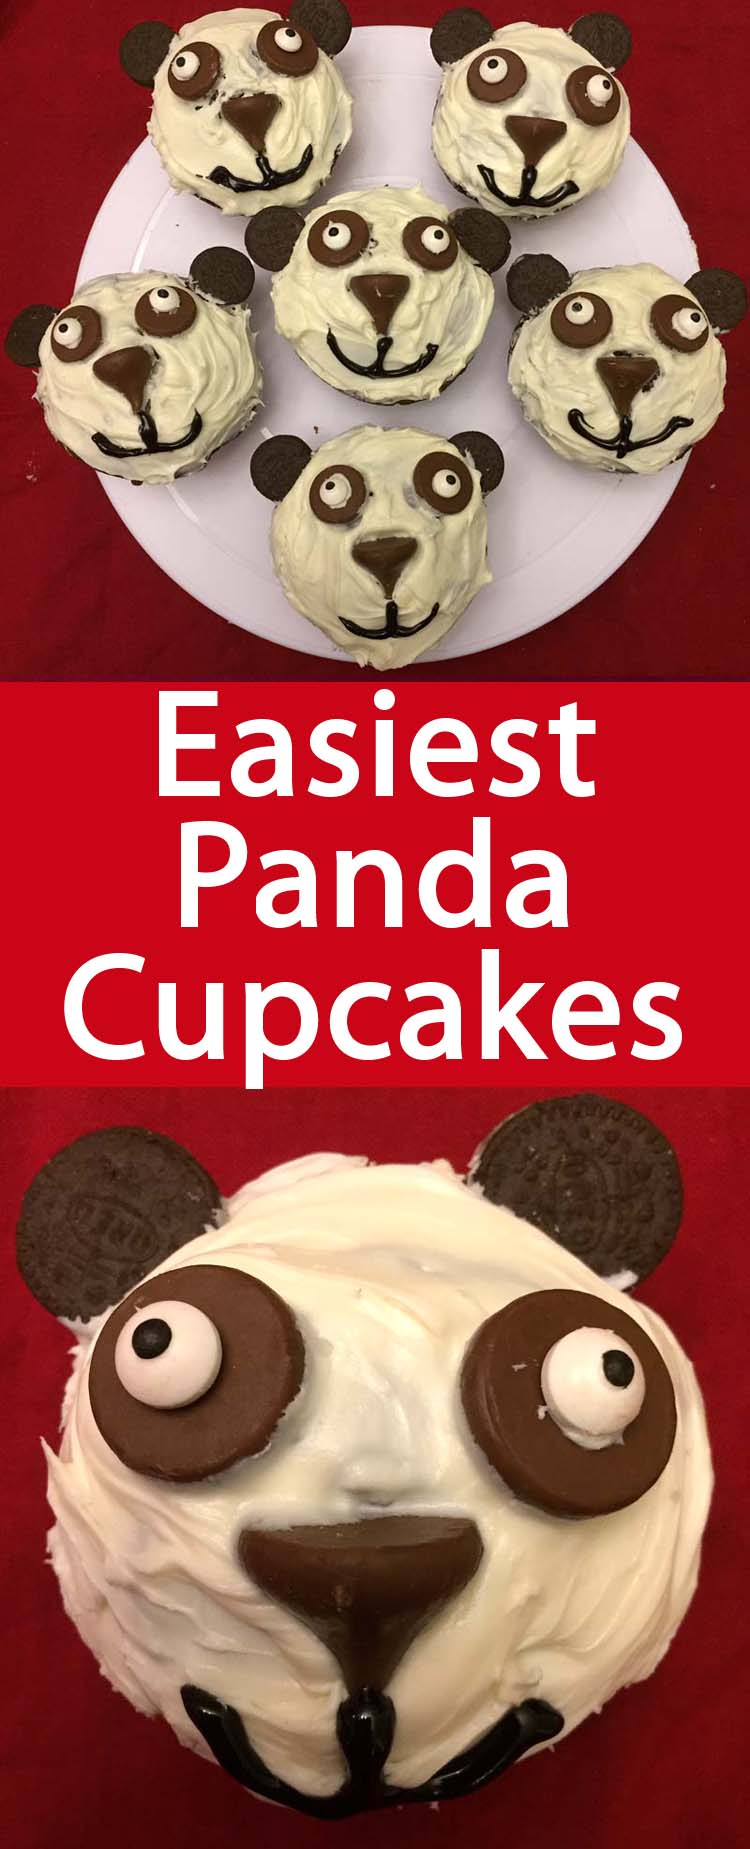 These easy panda cupcakes are perfect for panda themed party! They are so easy, even decoration challenged people can make these :)